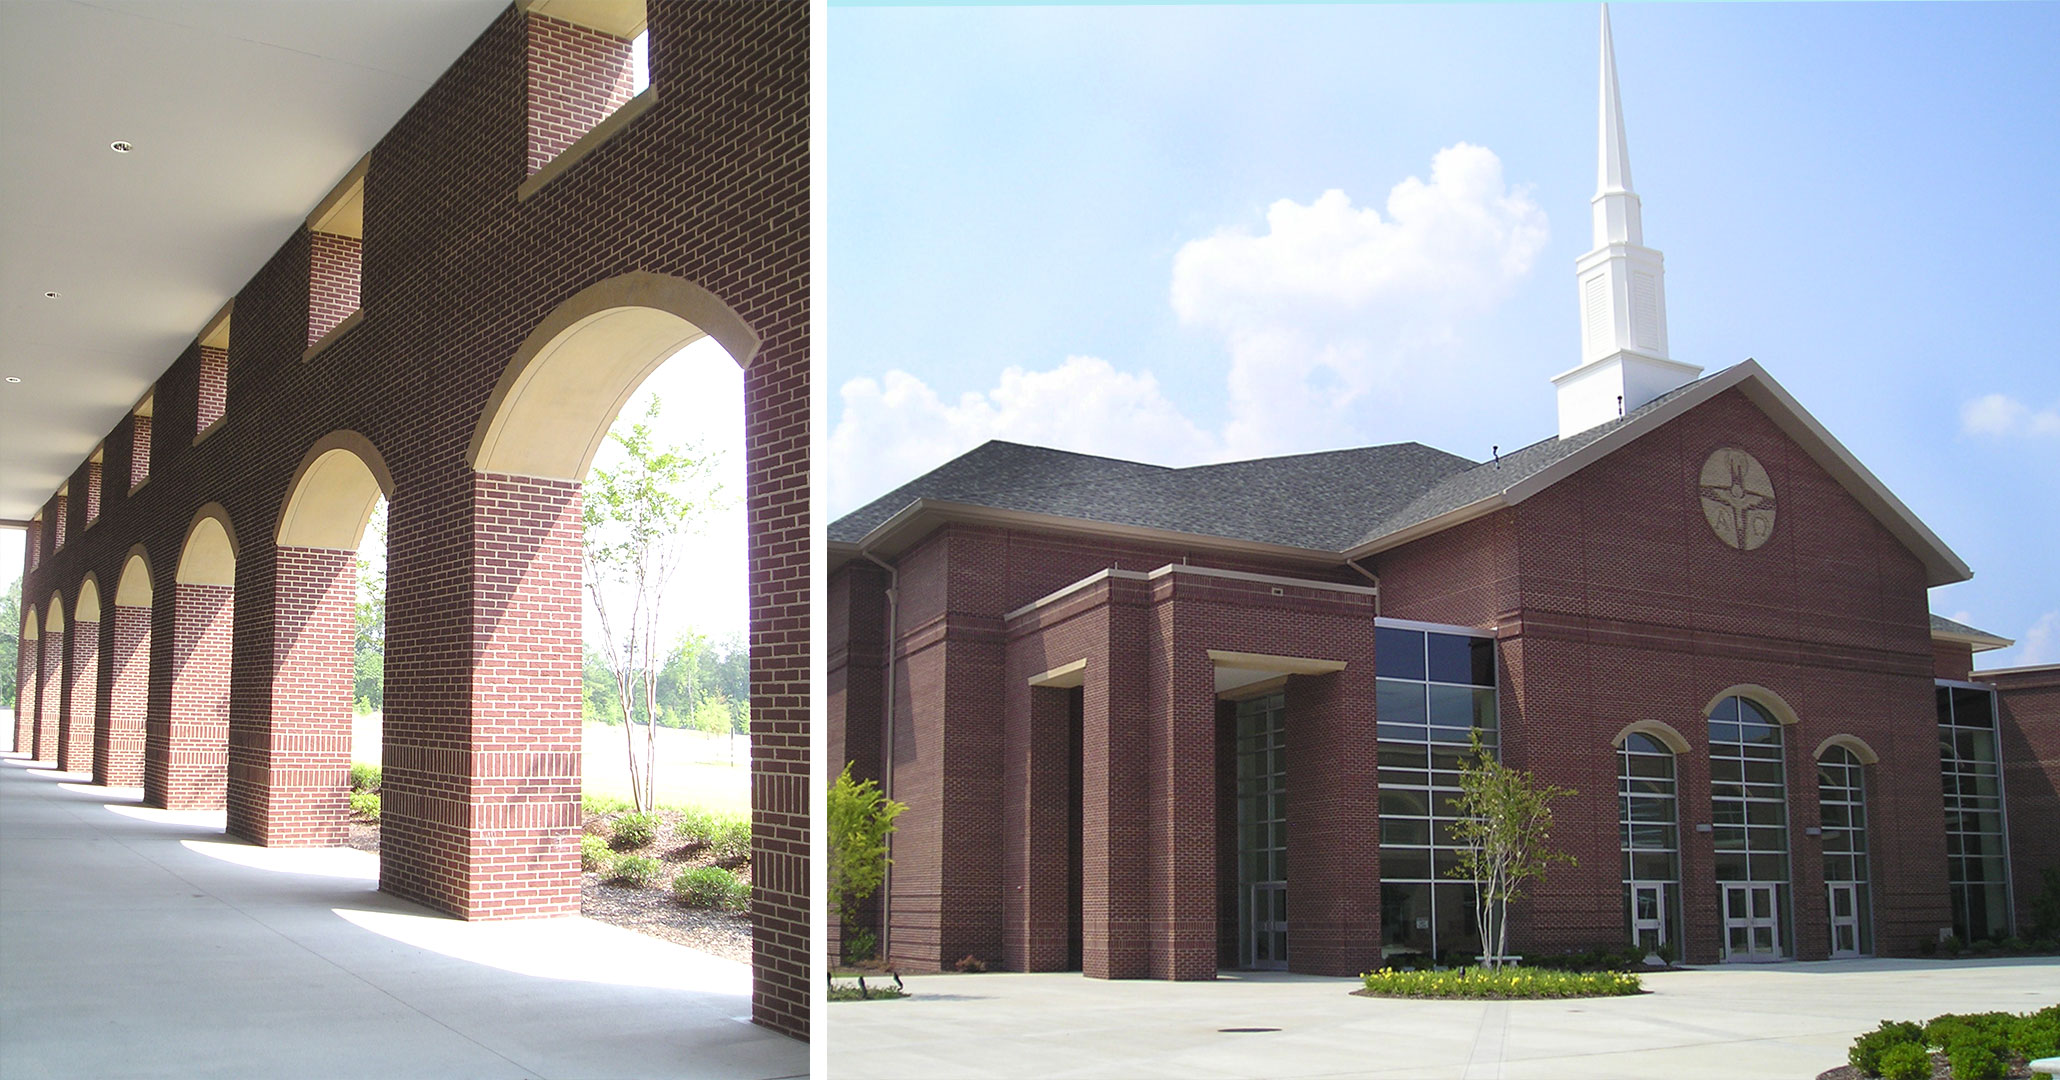 Boudreaux architects worked with the Riverland Hills Church to provide master planning services for their campus.